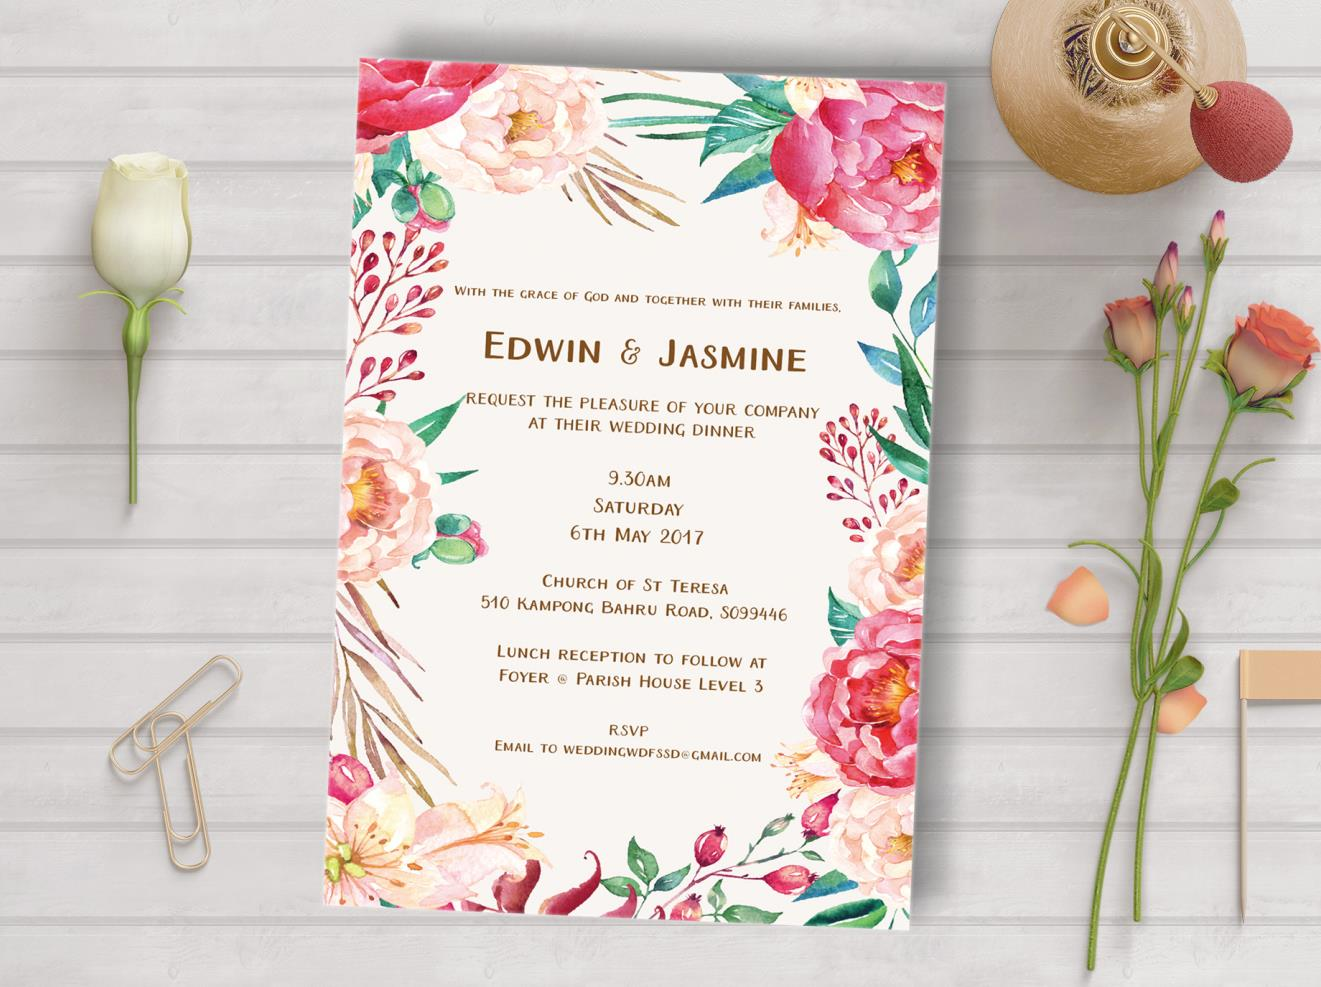 Wedding Card Invitation Messages: Wedding Invitation Wording Samples & Tips